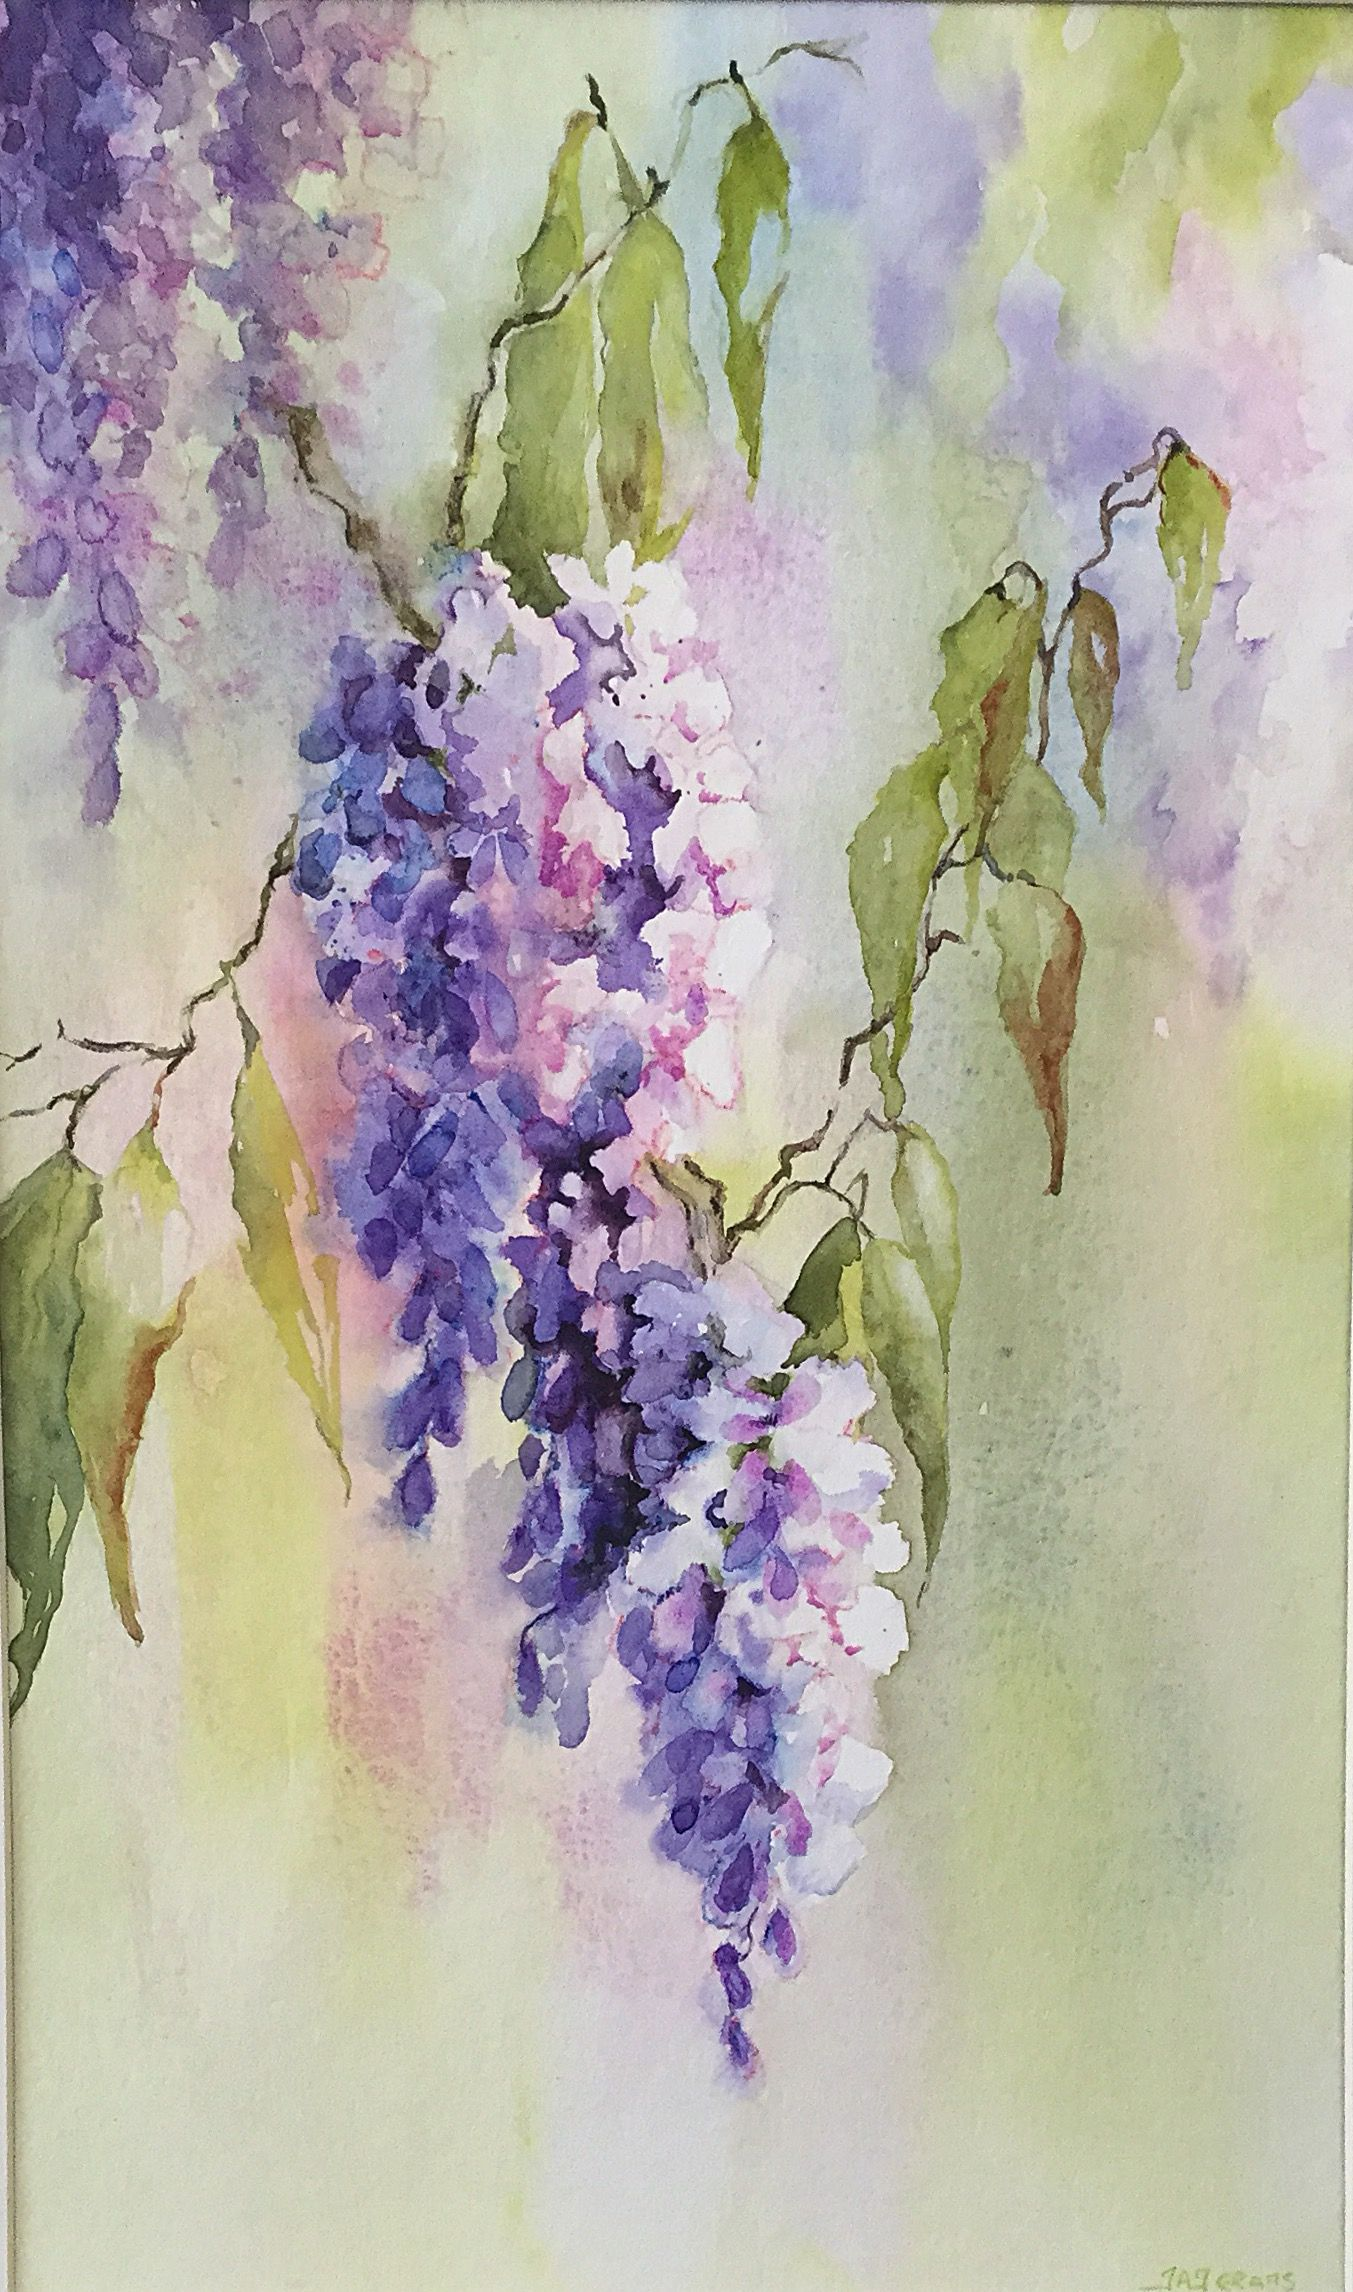 Transparent Watercolour Of Glycine Wisteria By Judith Jerams